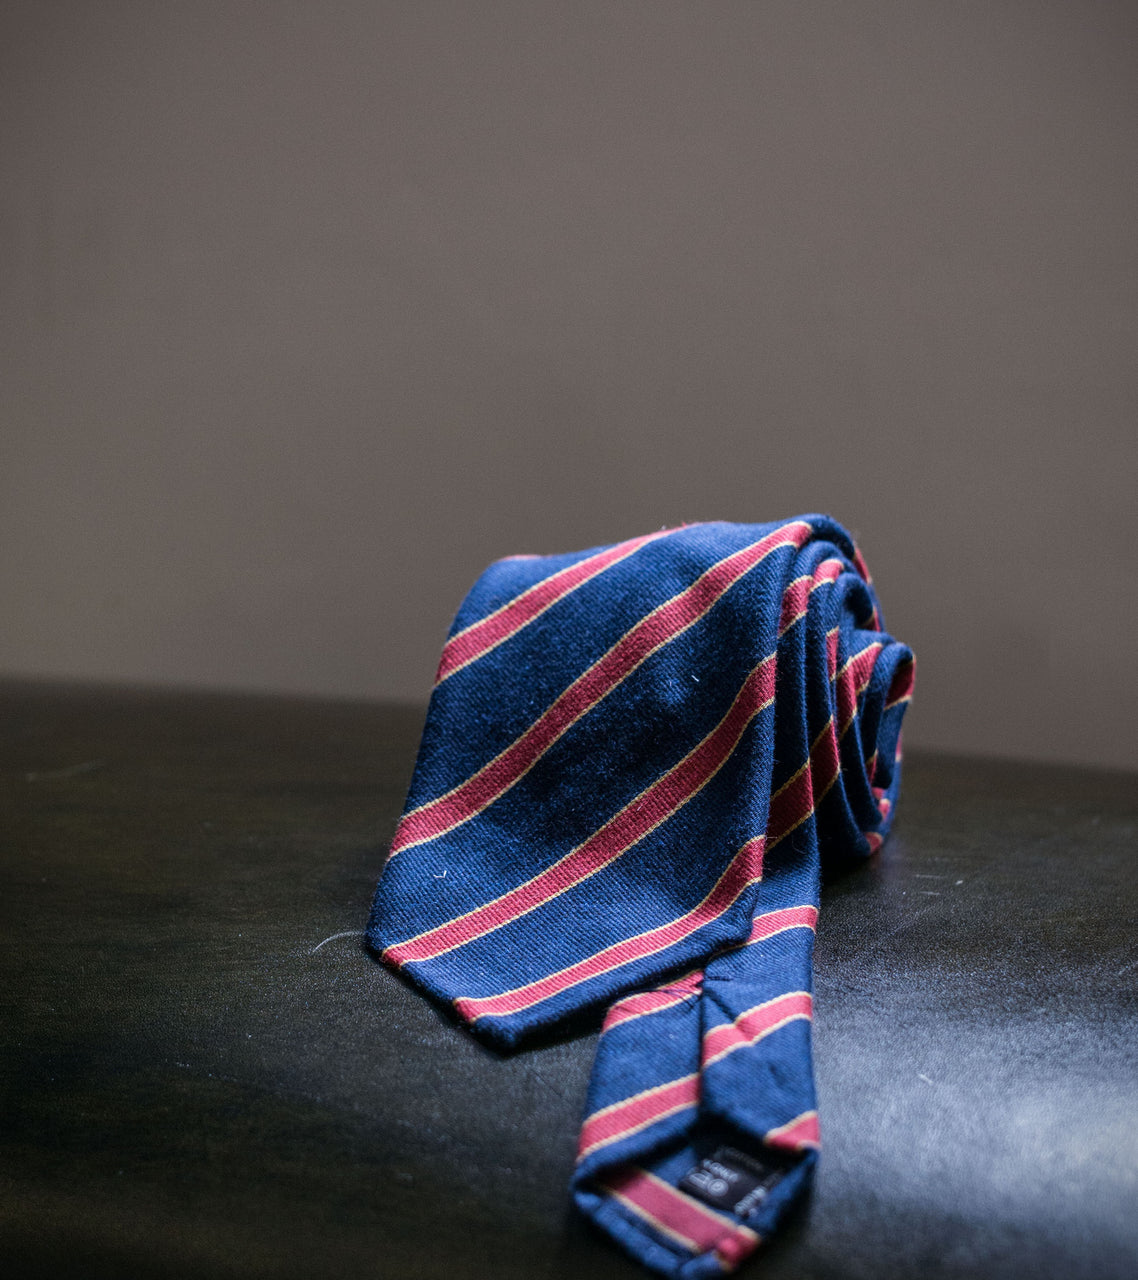 Bryceland's x Sevenfold Cotton & Silk Tie 30052